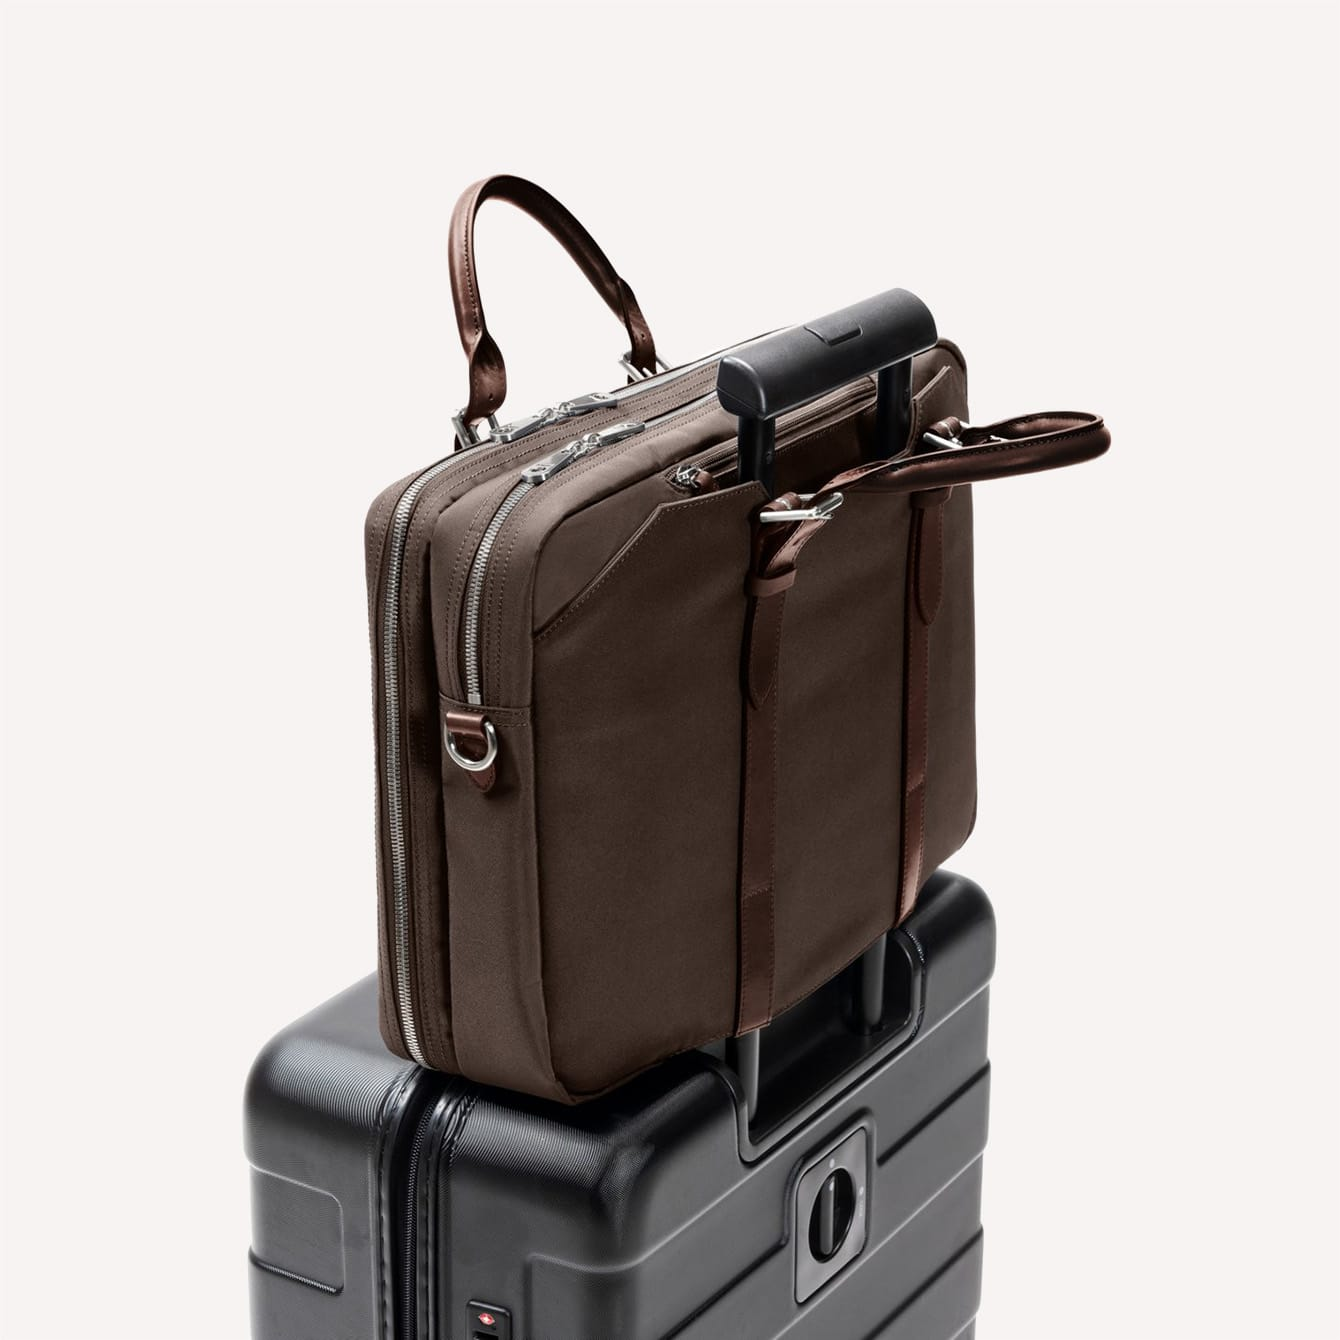 Stuart Lau The Cary Briefcase Holder Side View